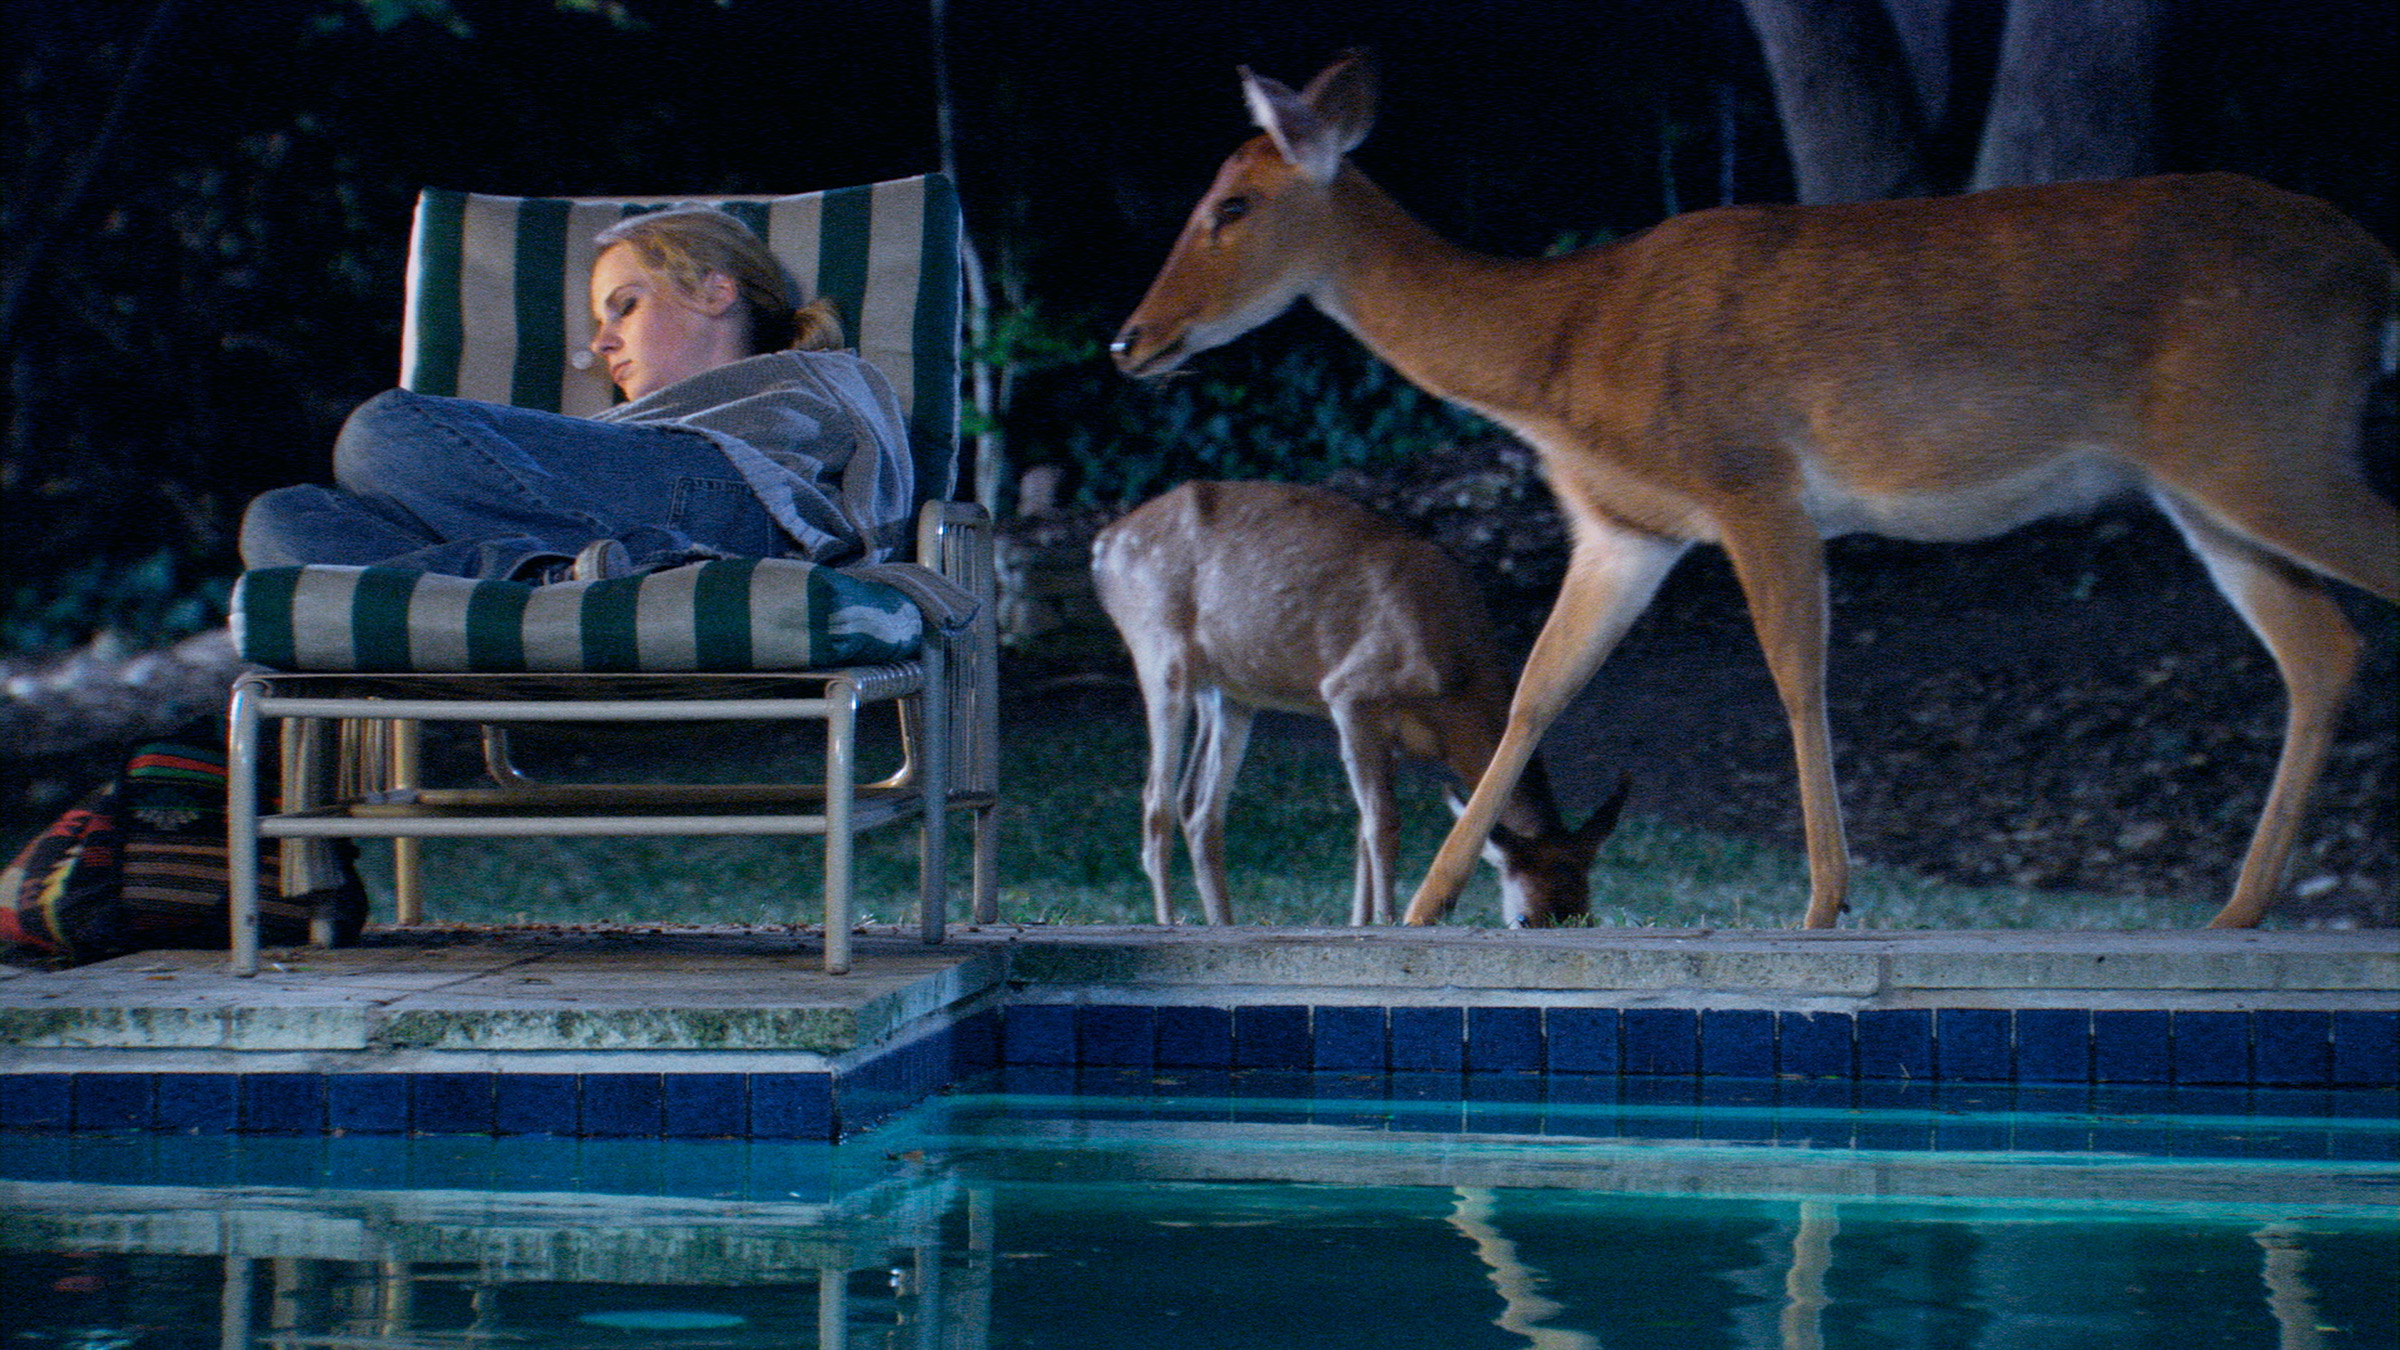 A woman is sleeping on a pool chair by the pool. Deer are walking next to her.